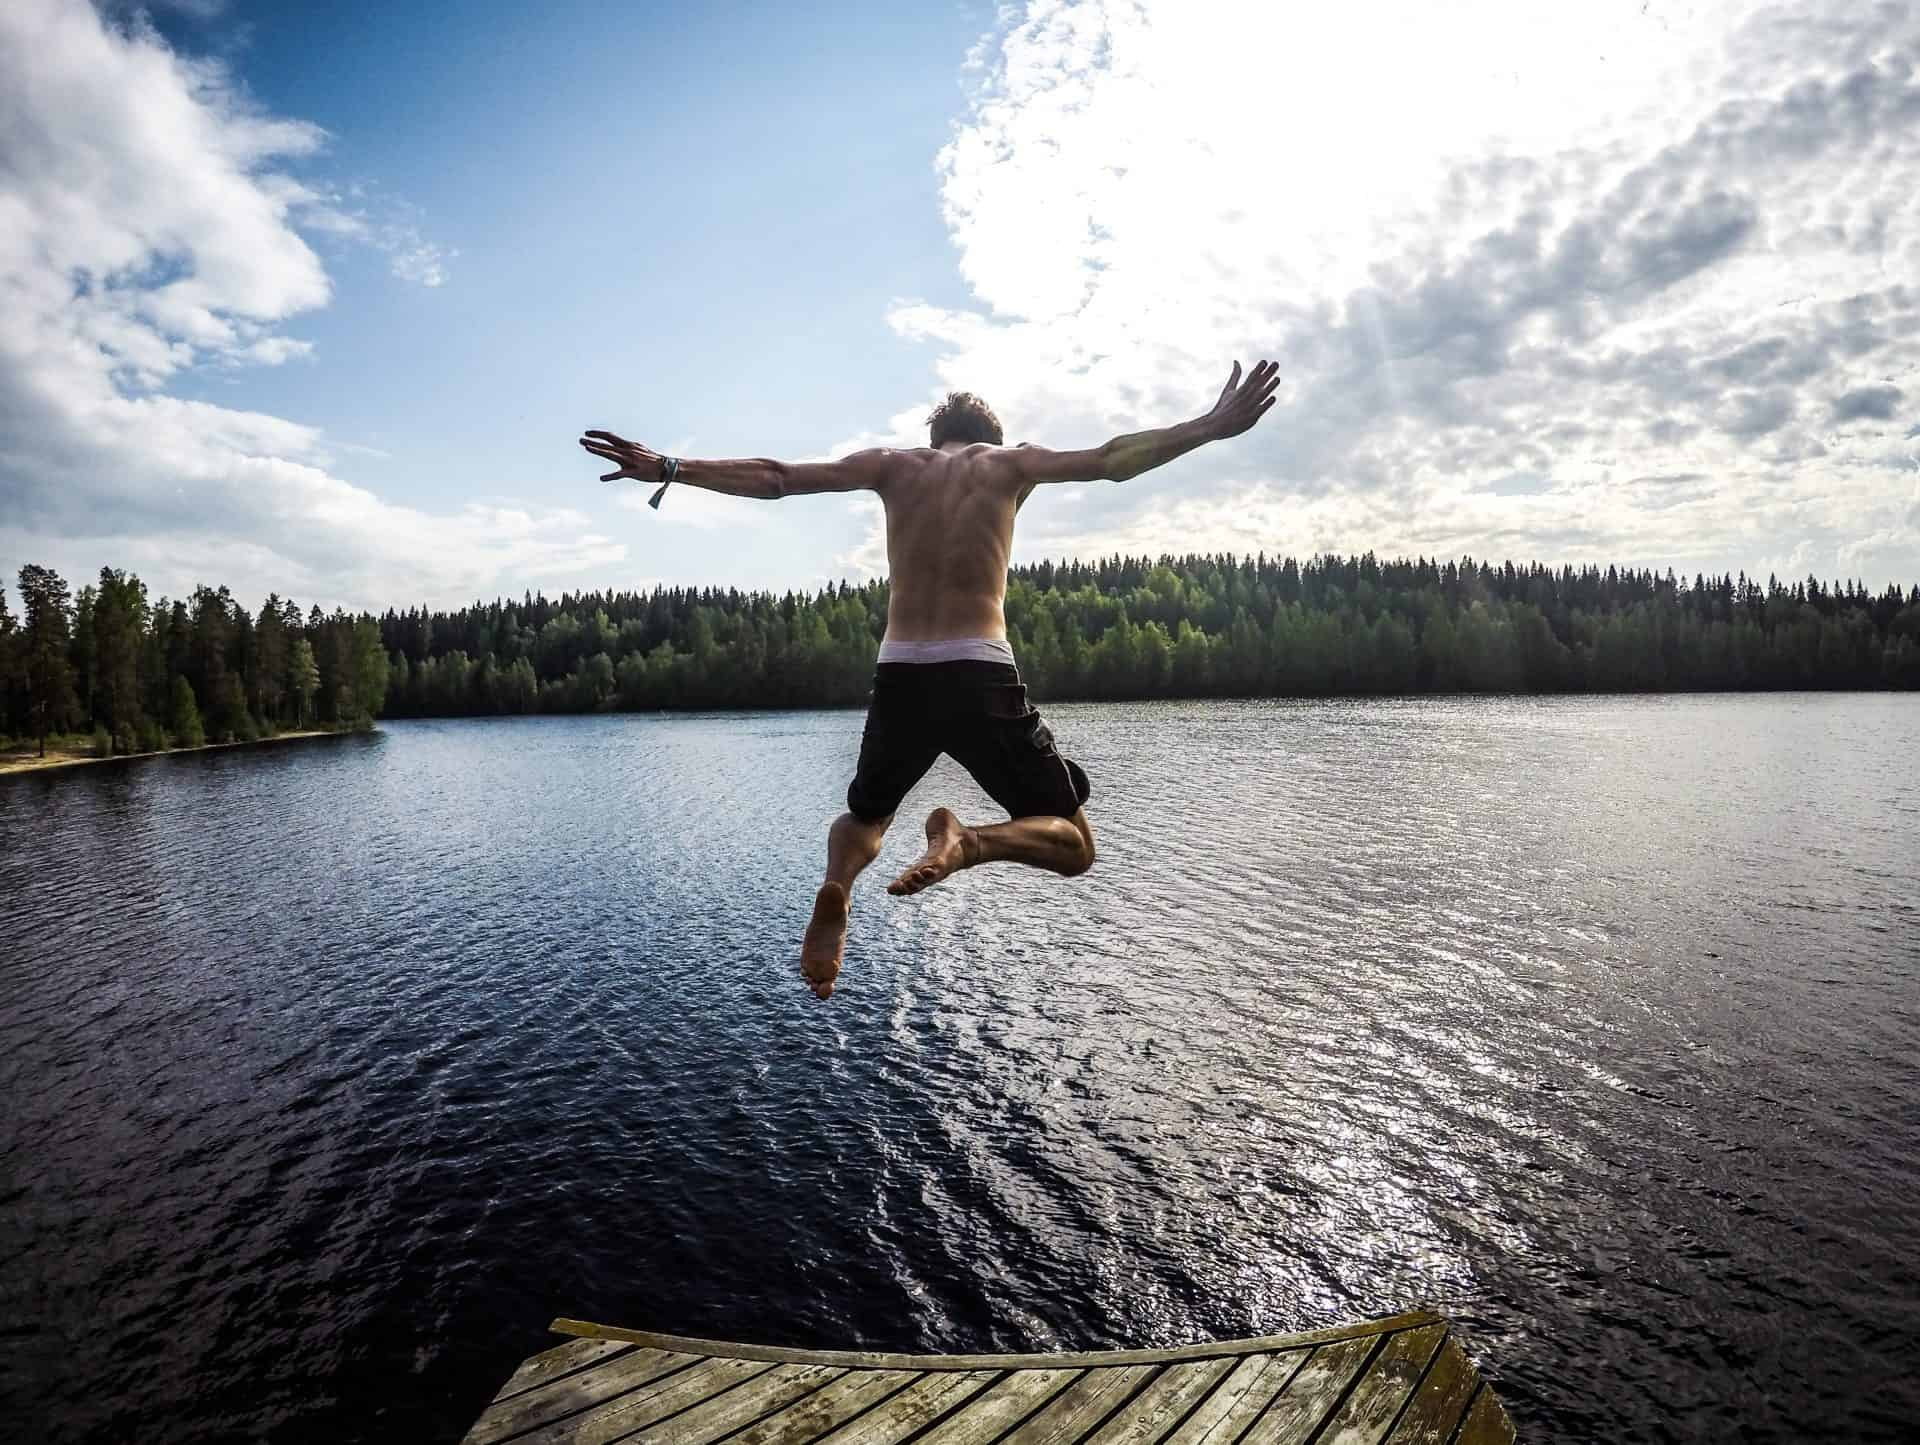 Use of sound in writing. Boy jumping into lake.